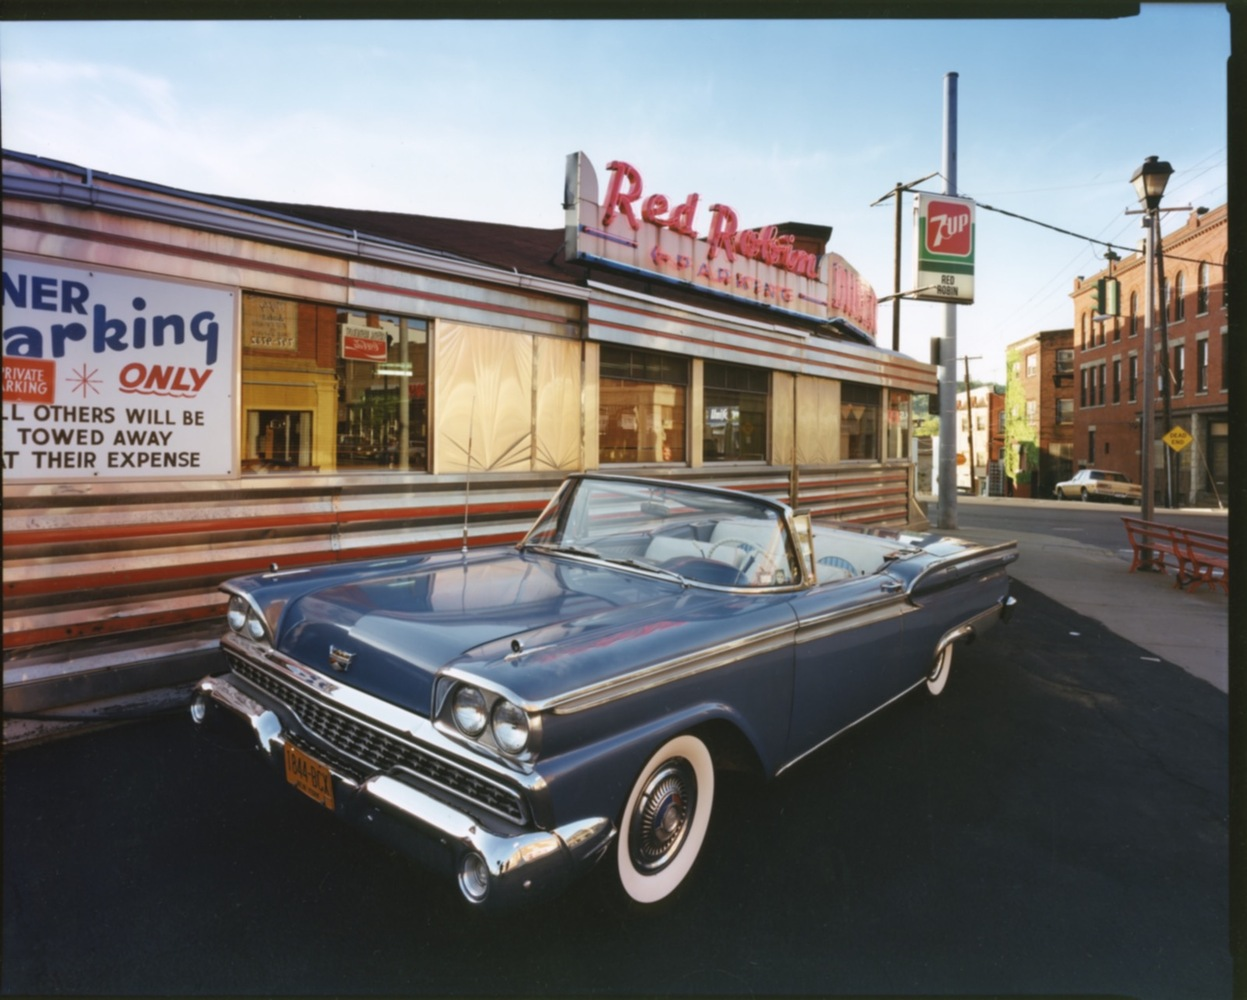 1959 Ford Skyliner, Red Robin Diner, Johnson City, NY, c. 1987